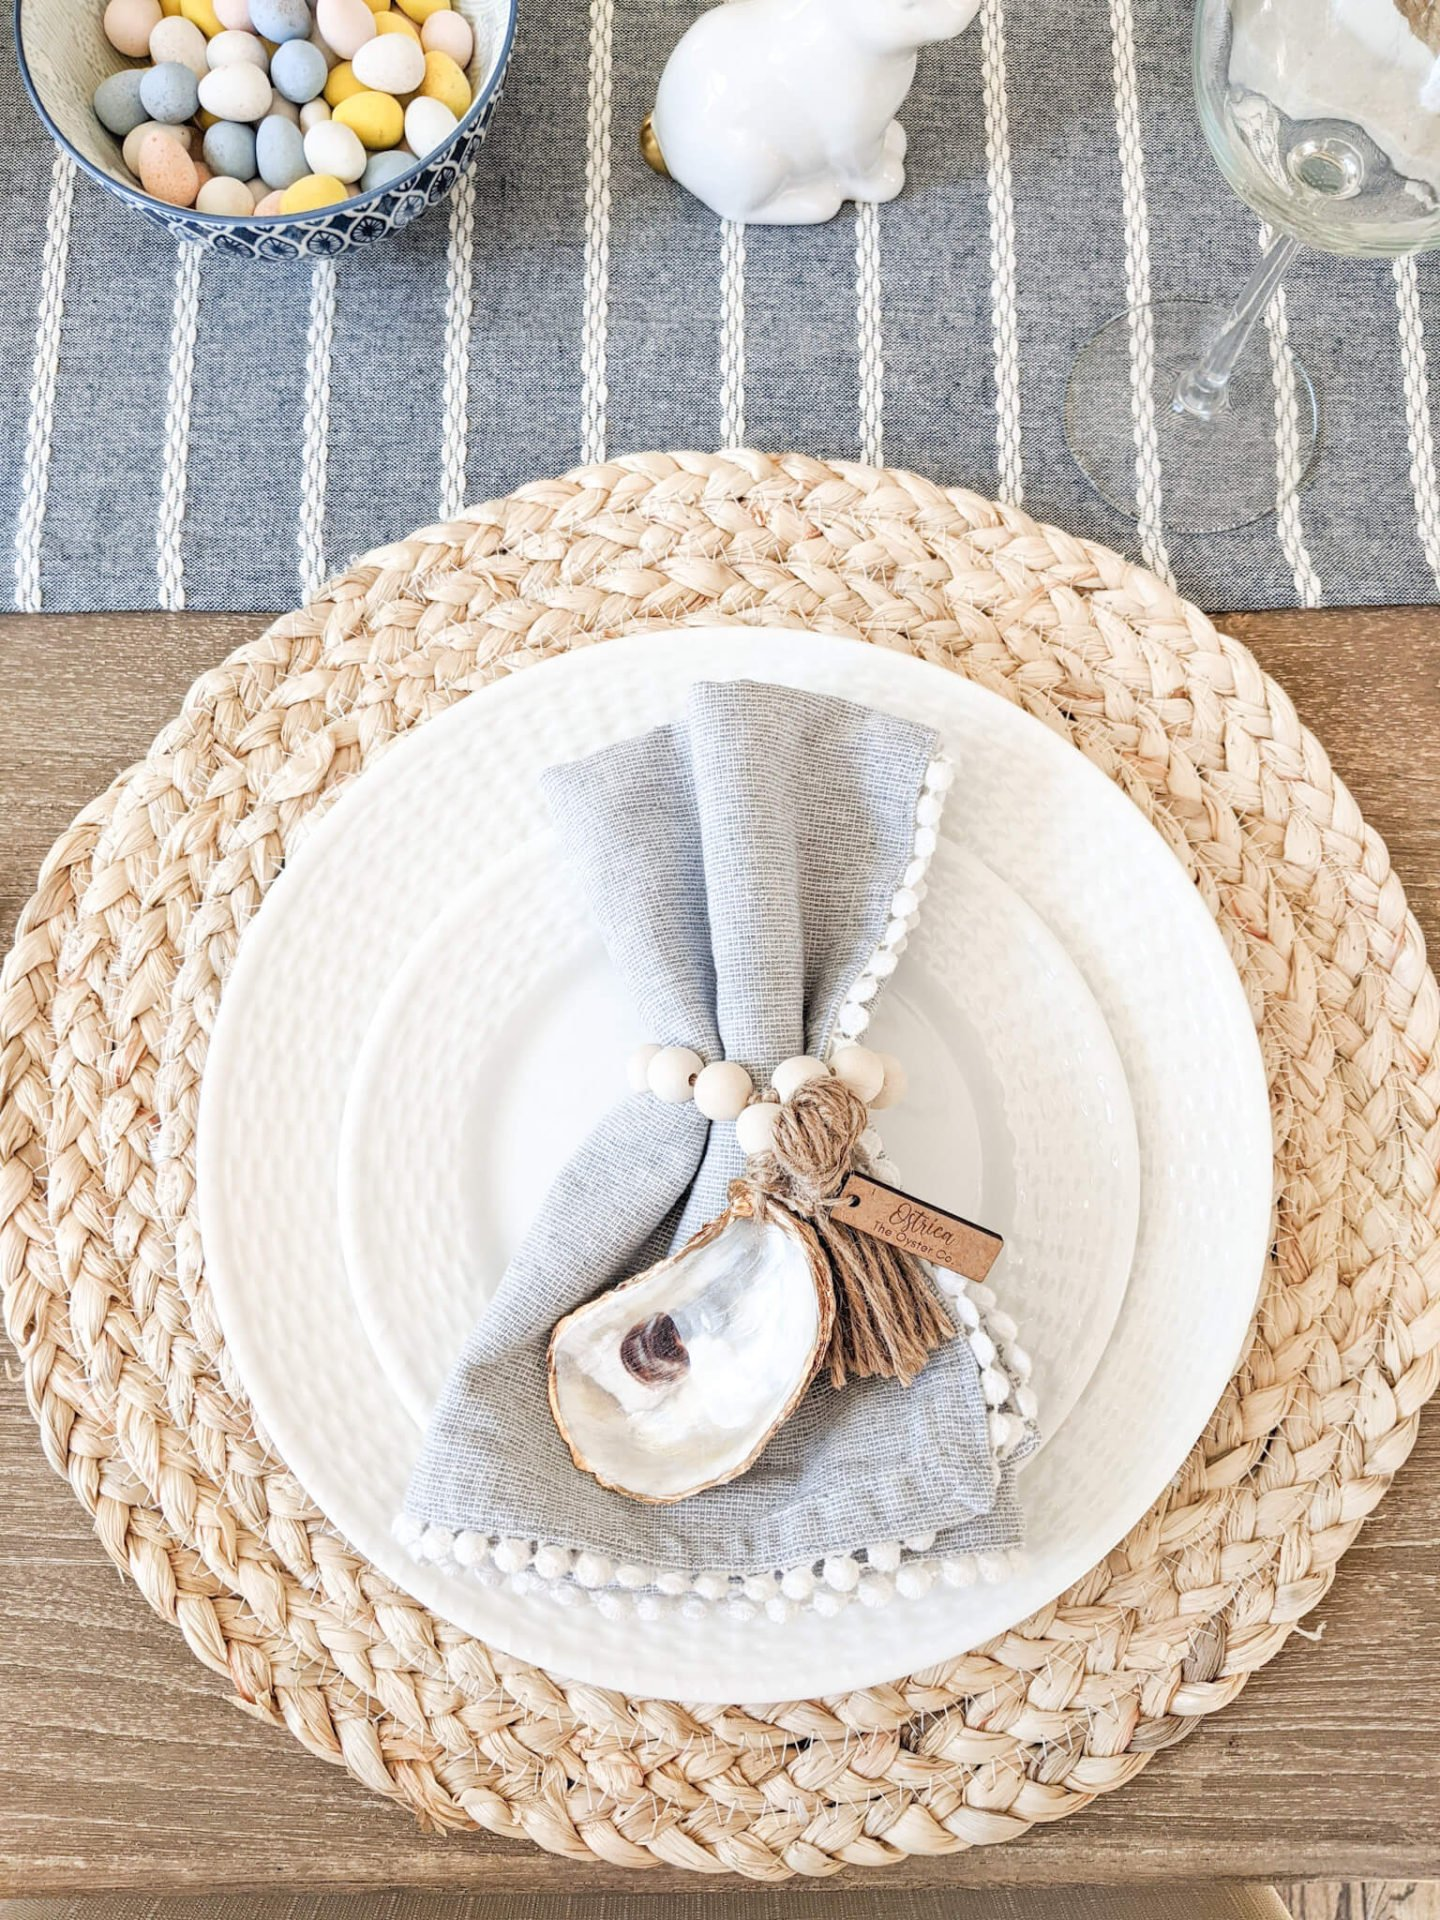 Easter or spring place setting for tablescape